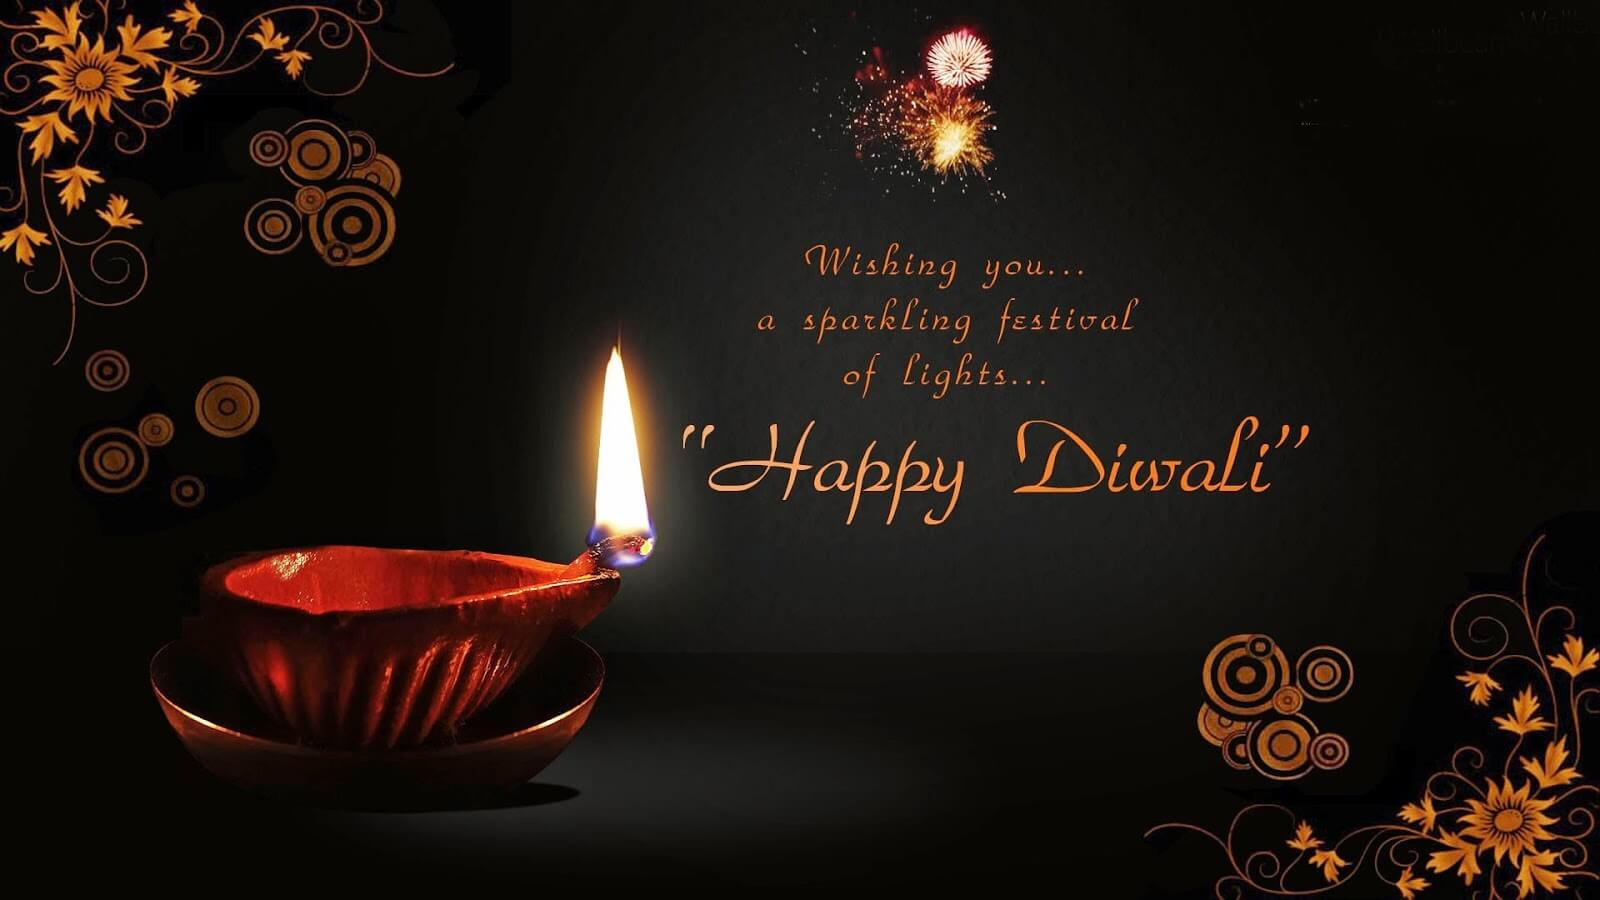 diwali deepavali festival of lights hd wallpaper